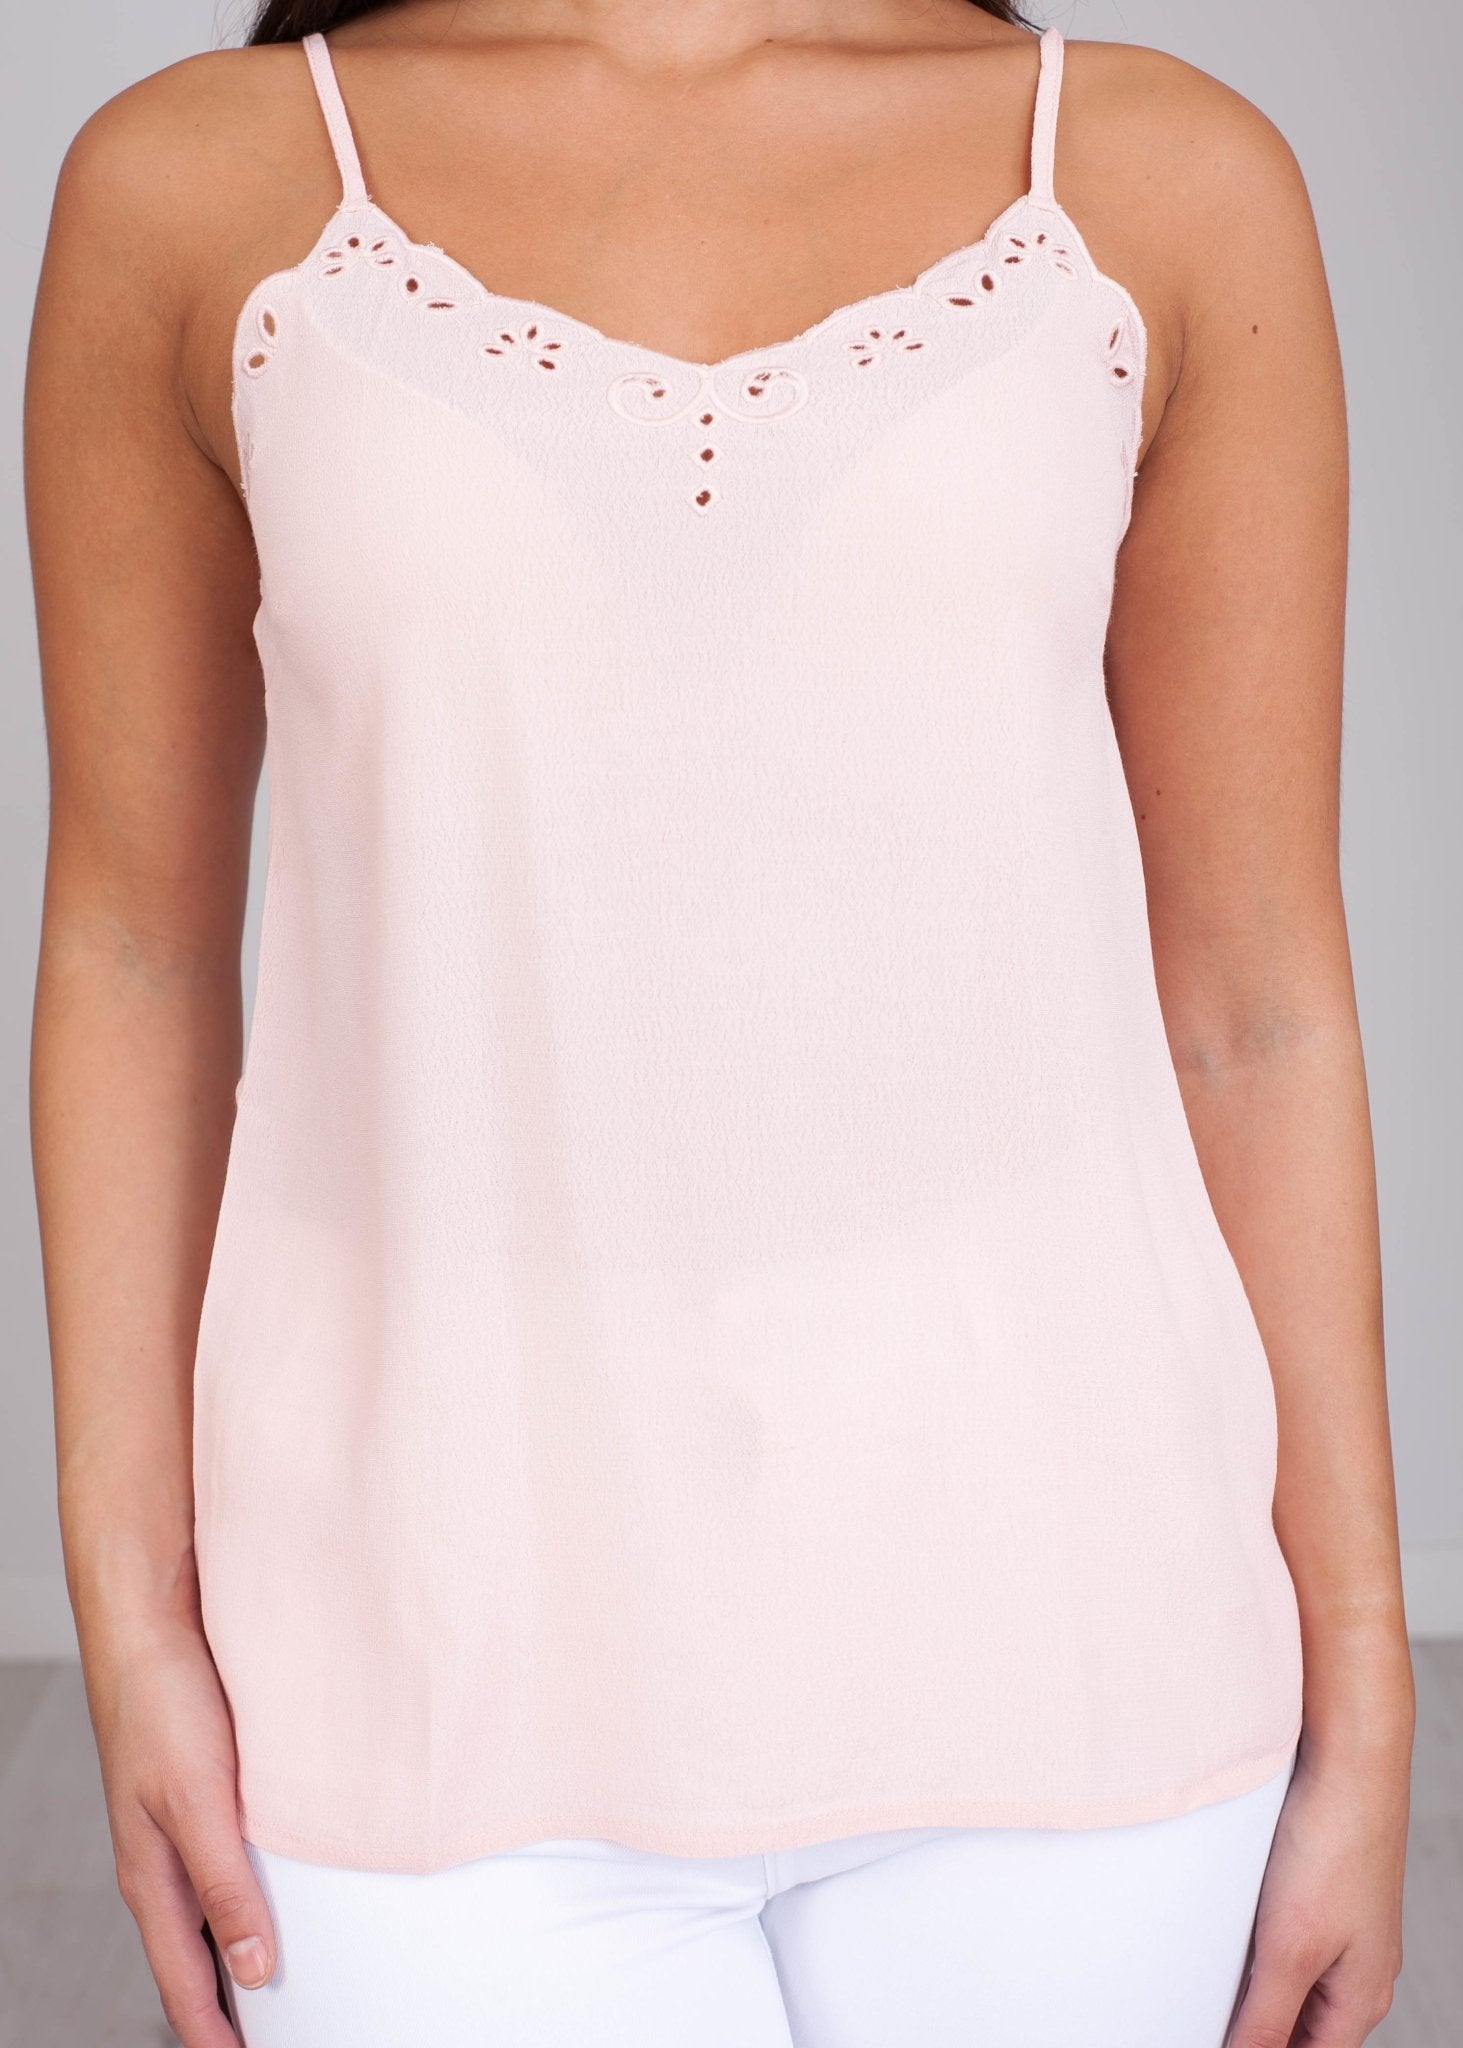 FiFi Pink Embroidery Cami - The Walk in Wardrobe